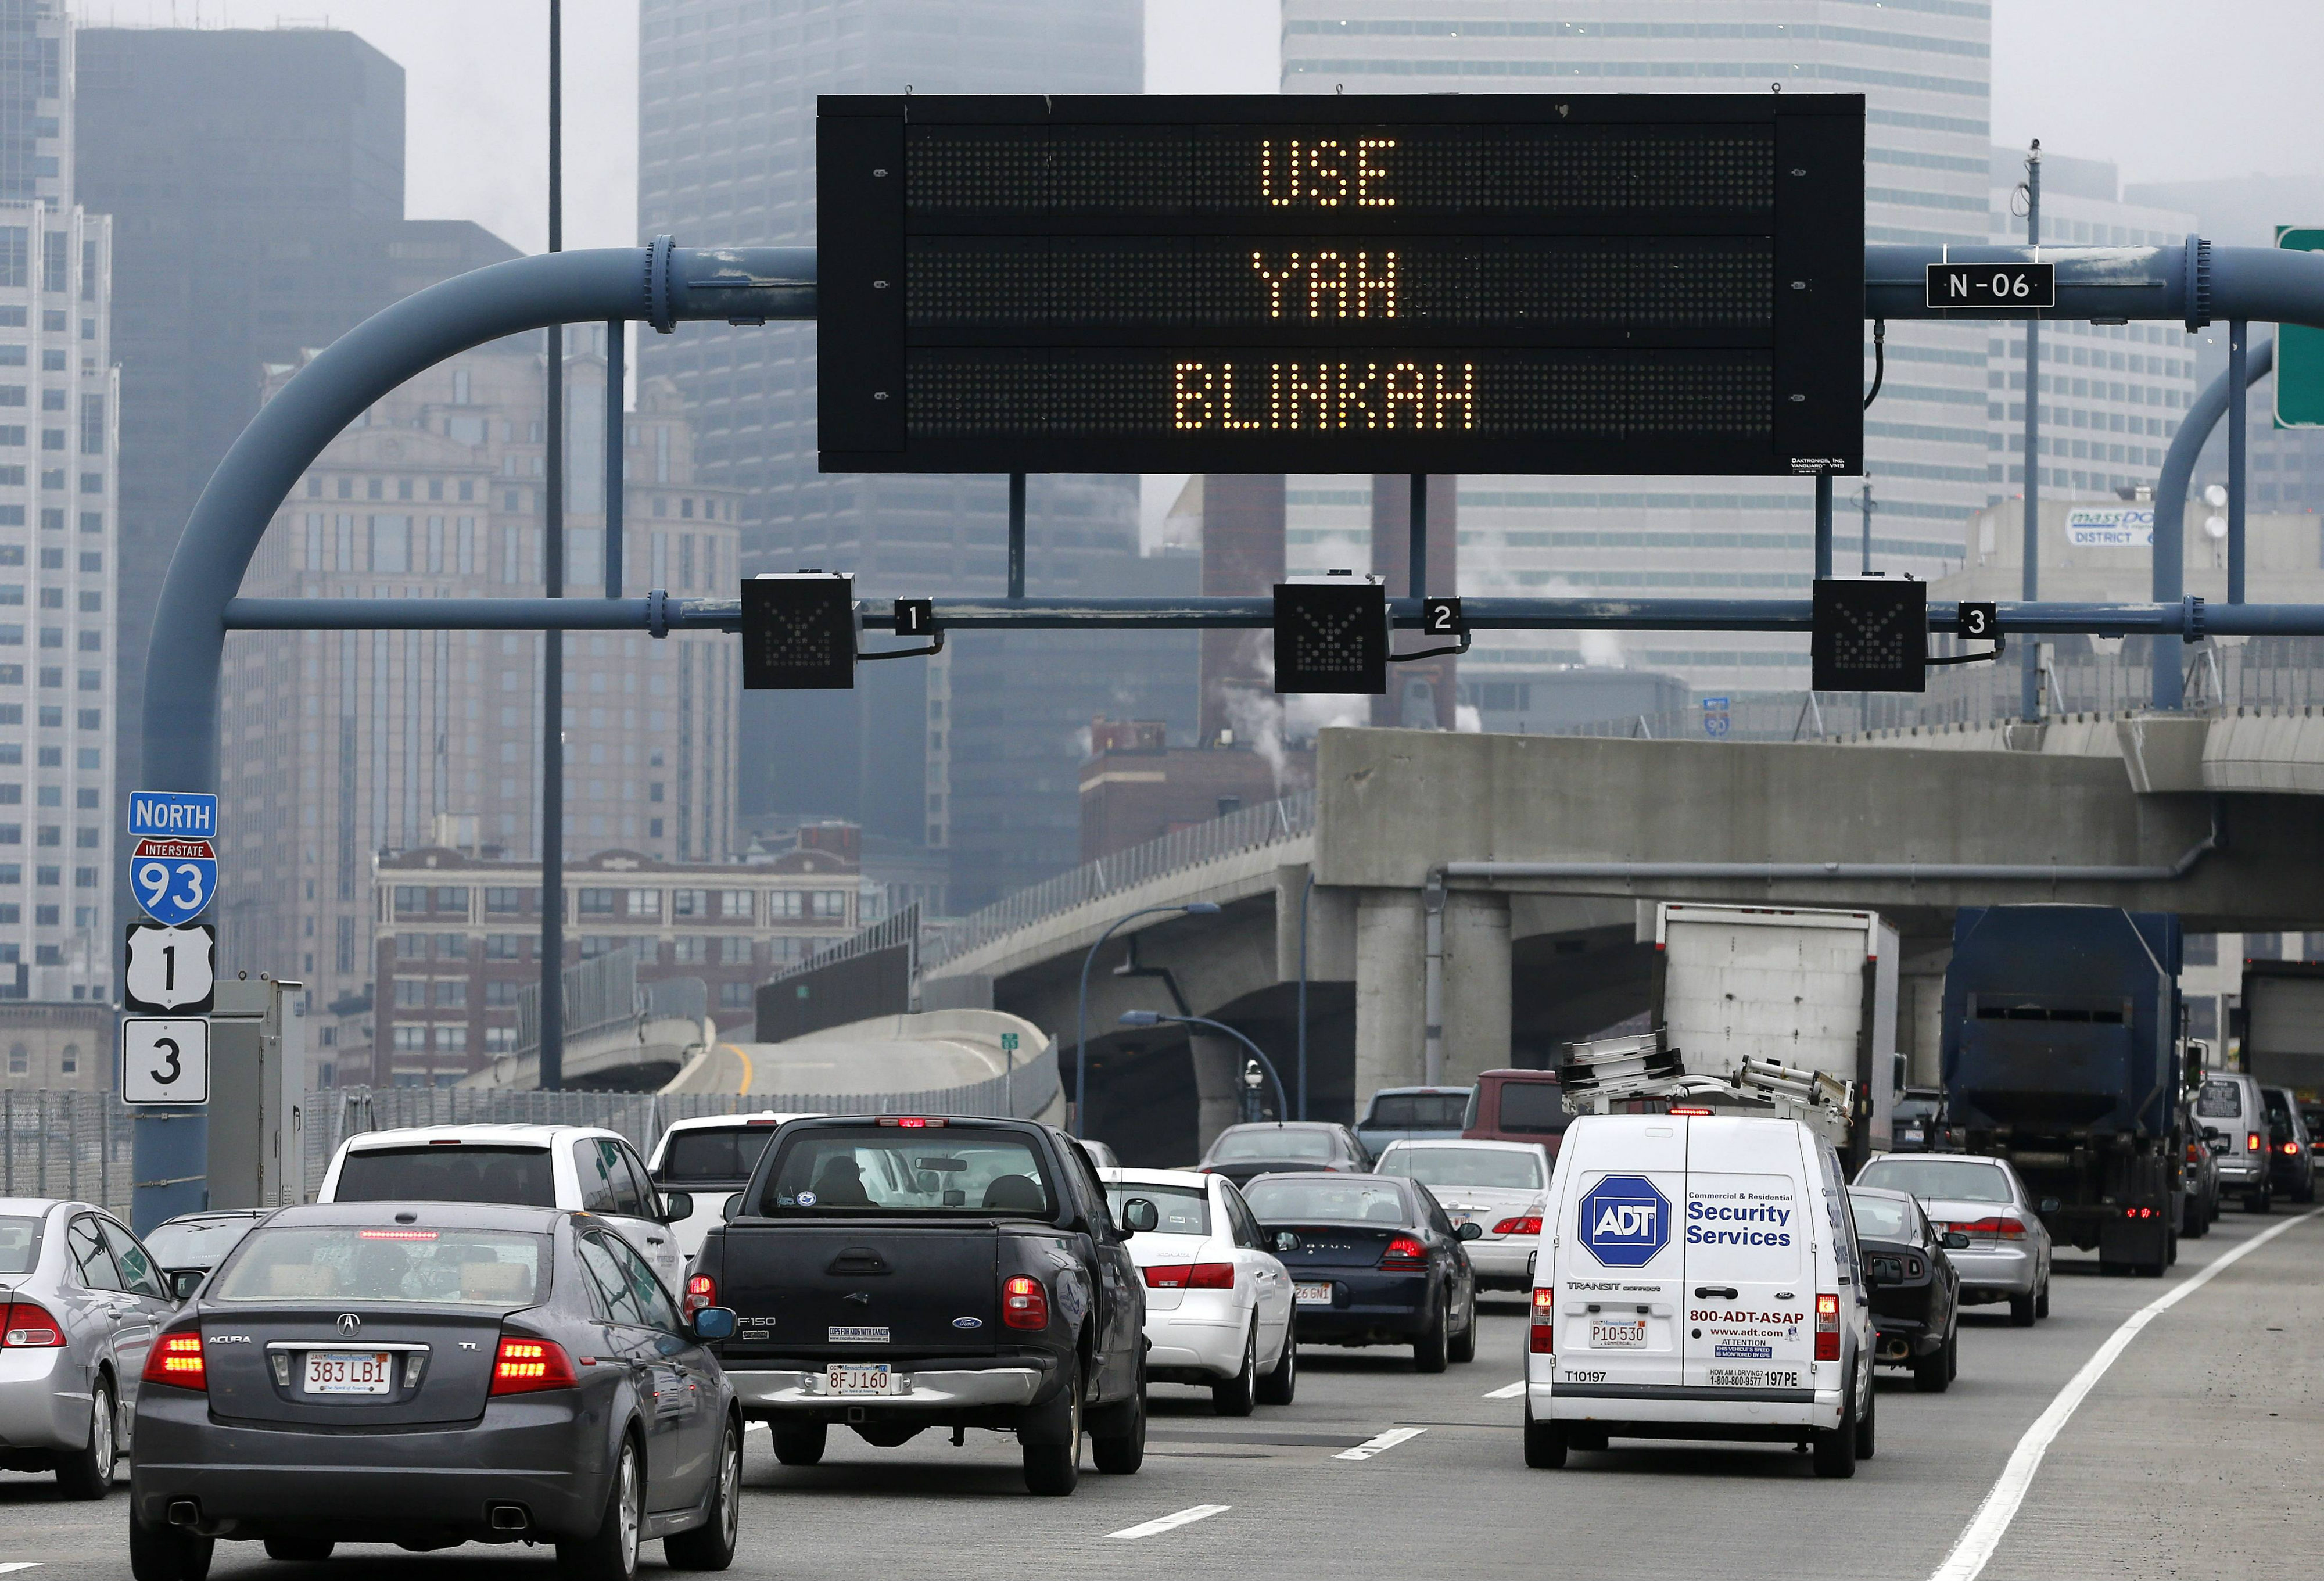 Interstate 93 Blocked By Black Lives Matter Protest Us News